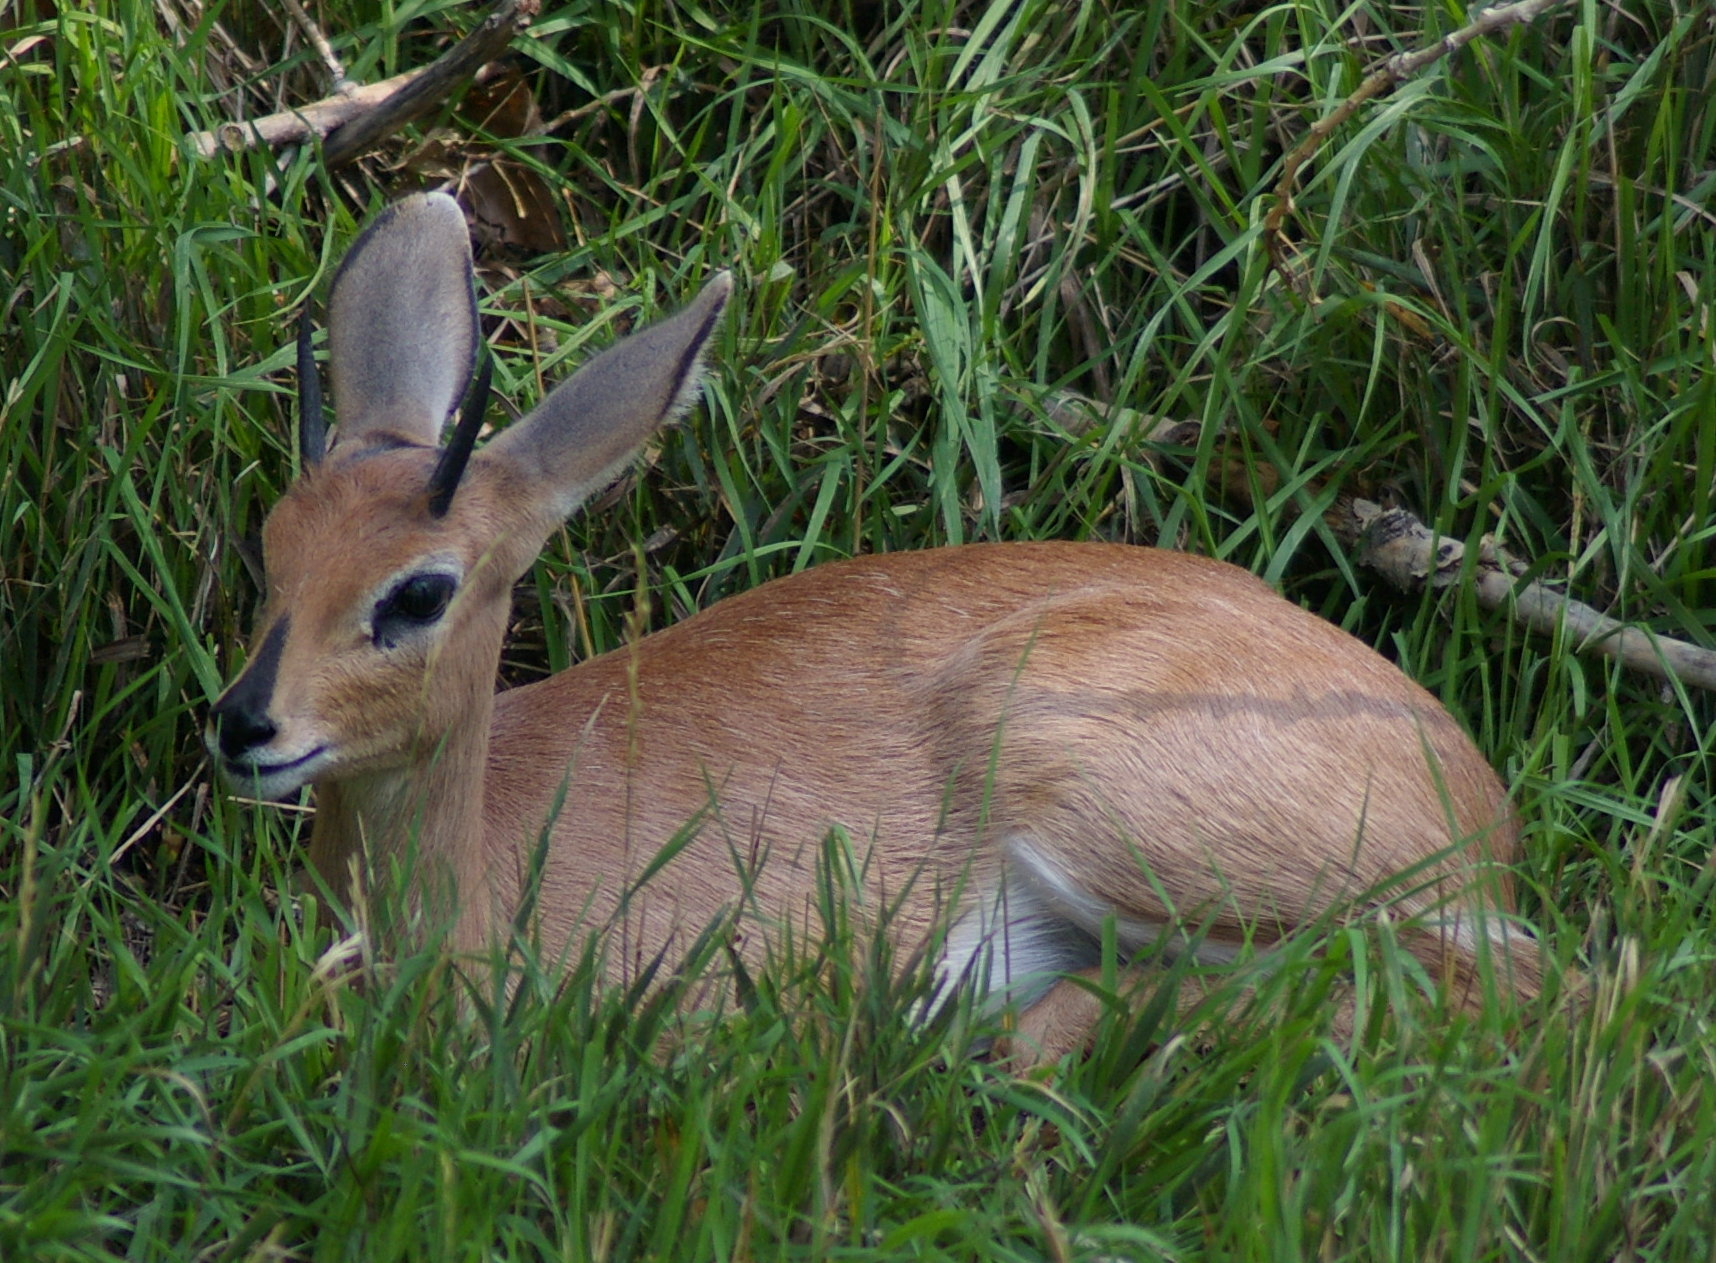 http://upload.wikimedia.org/wikipedia/commons/3/33/Steenbok_sitting.jpg